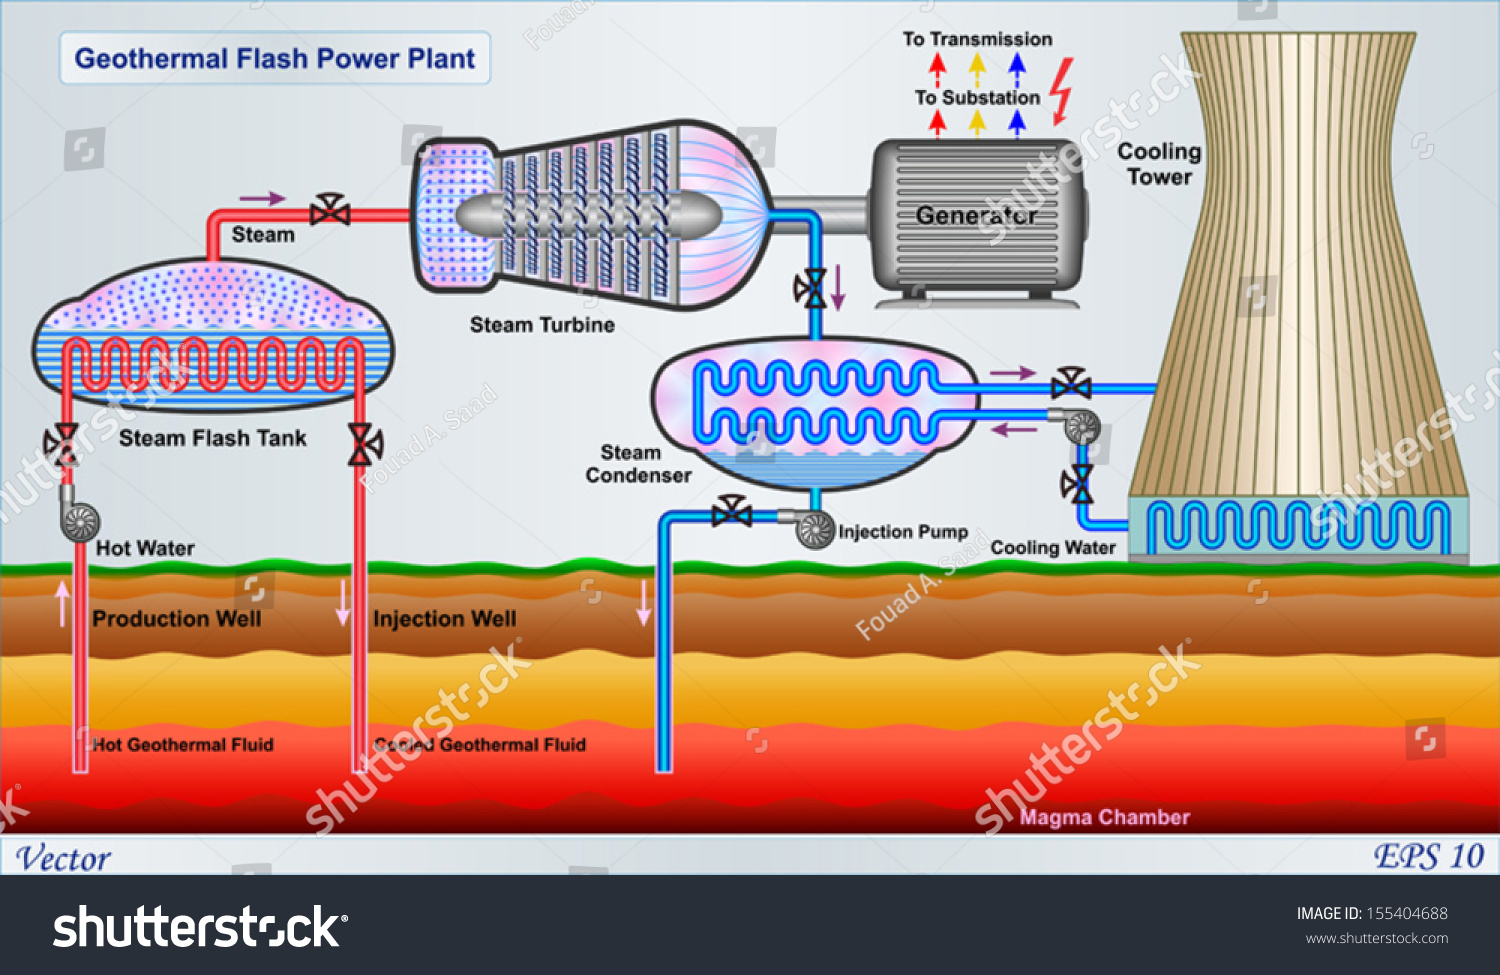 geothermal flash power plant diagram stock vector illustration  : diagram geothermal power plant - findchart.co